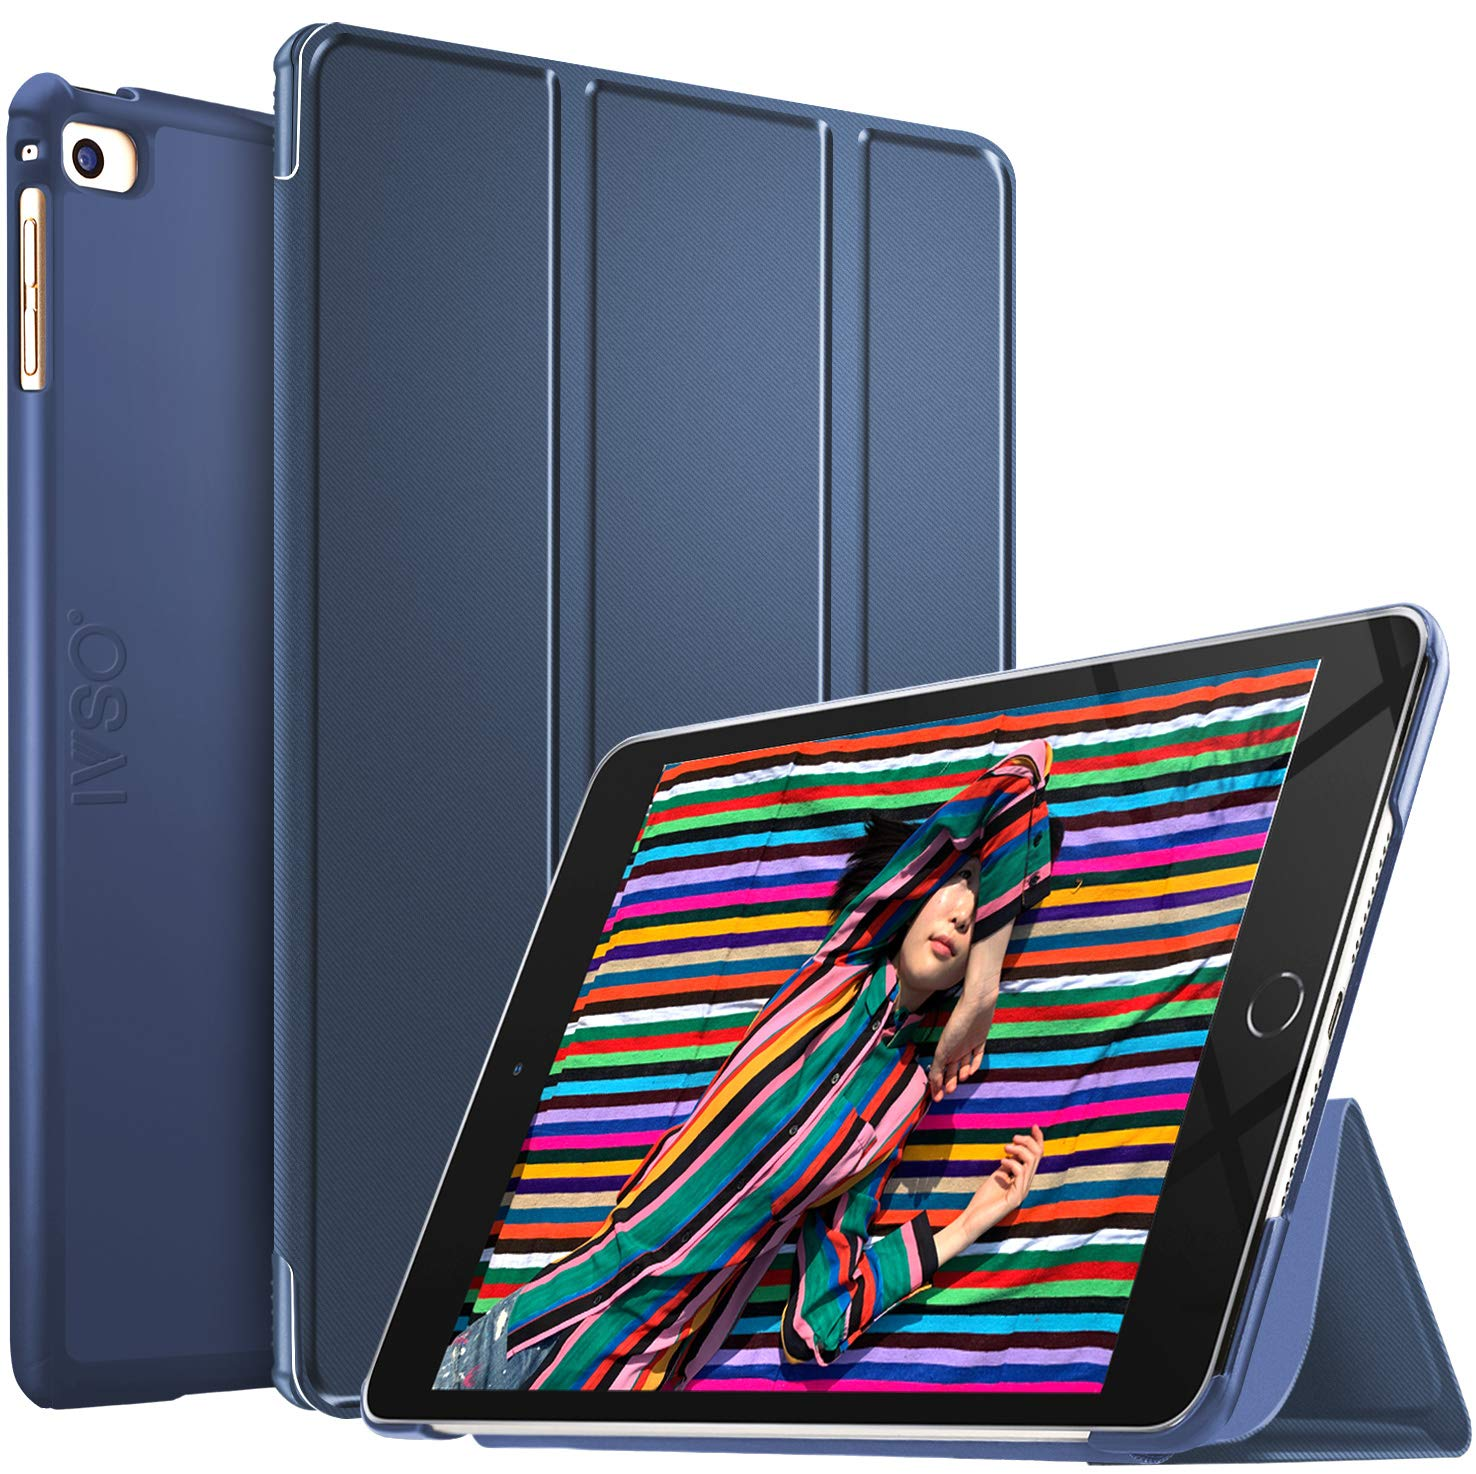 IVSO Case for ipad Mini 5 7.9 inches 2019, Auto Wake,Sleep Ultra Lightweight Protective Slim Smart Cover Case for iPad Mini 5th Generation 7.9 inches 2019 Tablet (Blue)